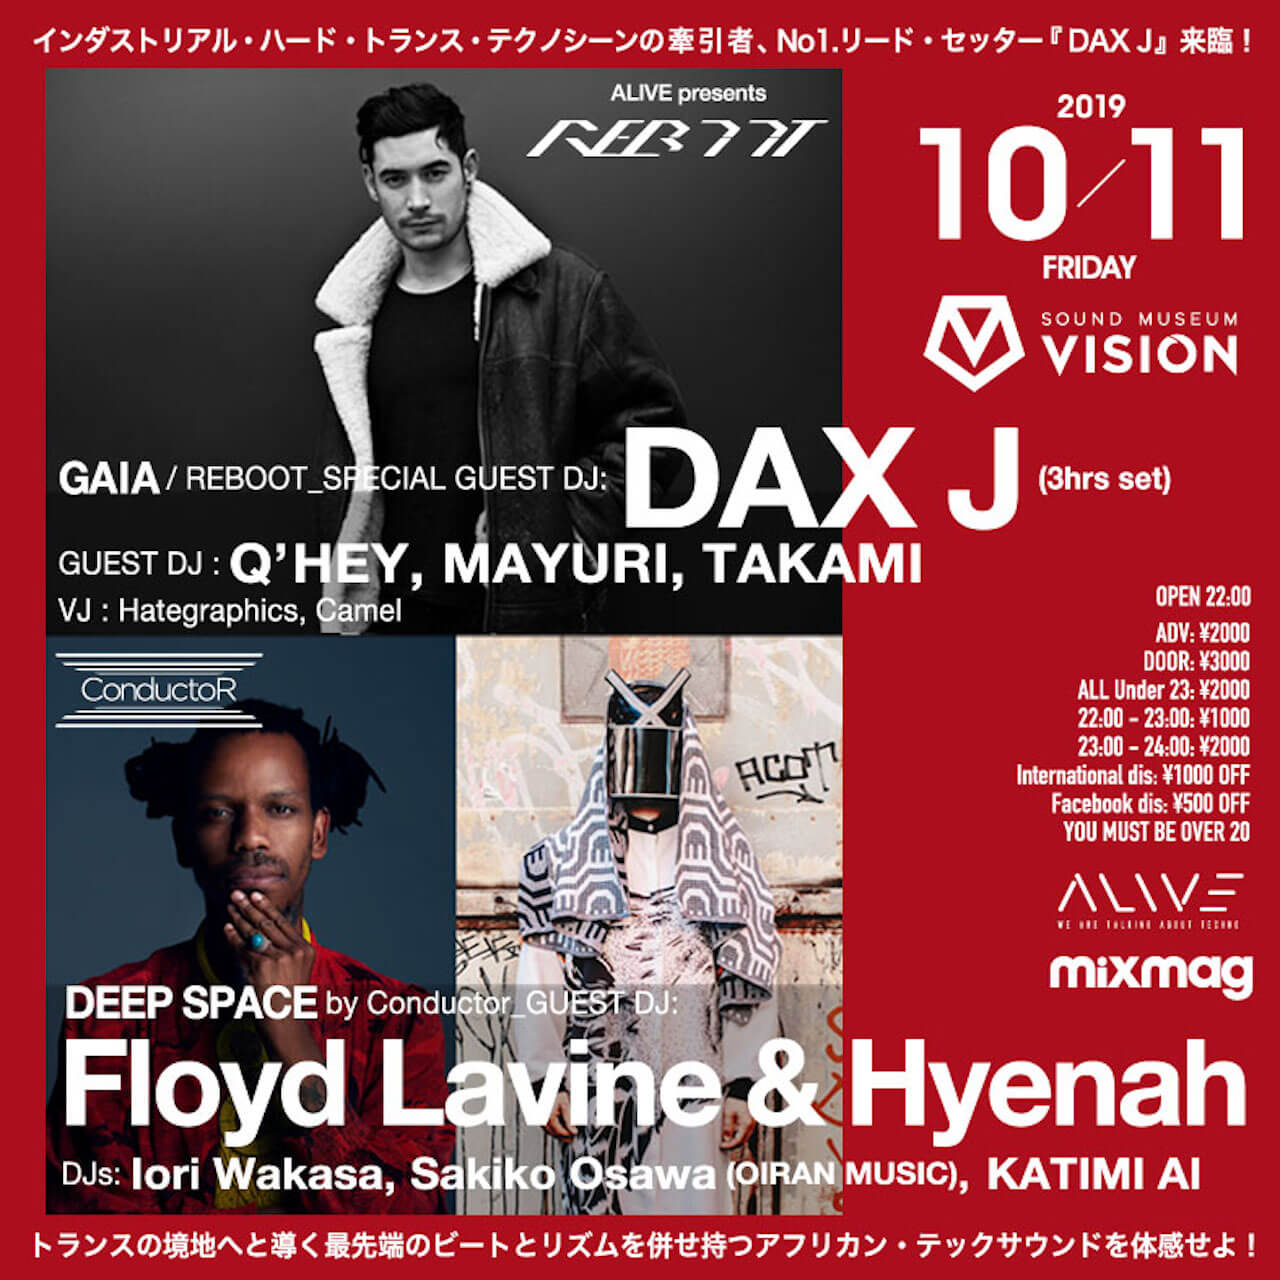 <ALIVE presents REBOOT>にDAX J、Floyd Lavine、Hyenahらが登場 music191004-alive-presents-reboot-feat-dax-j-4